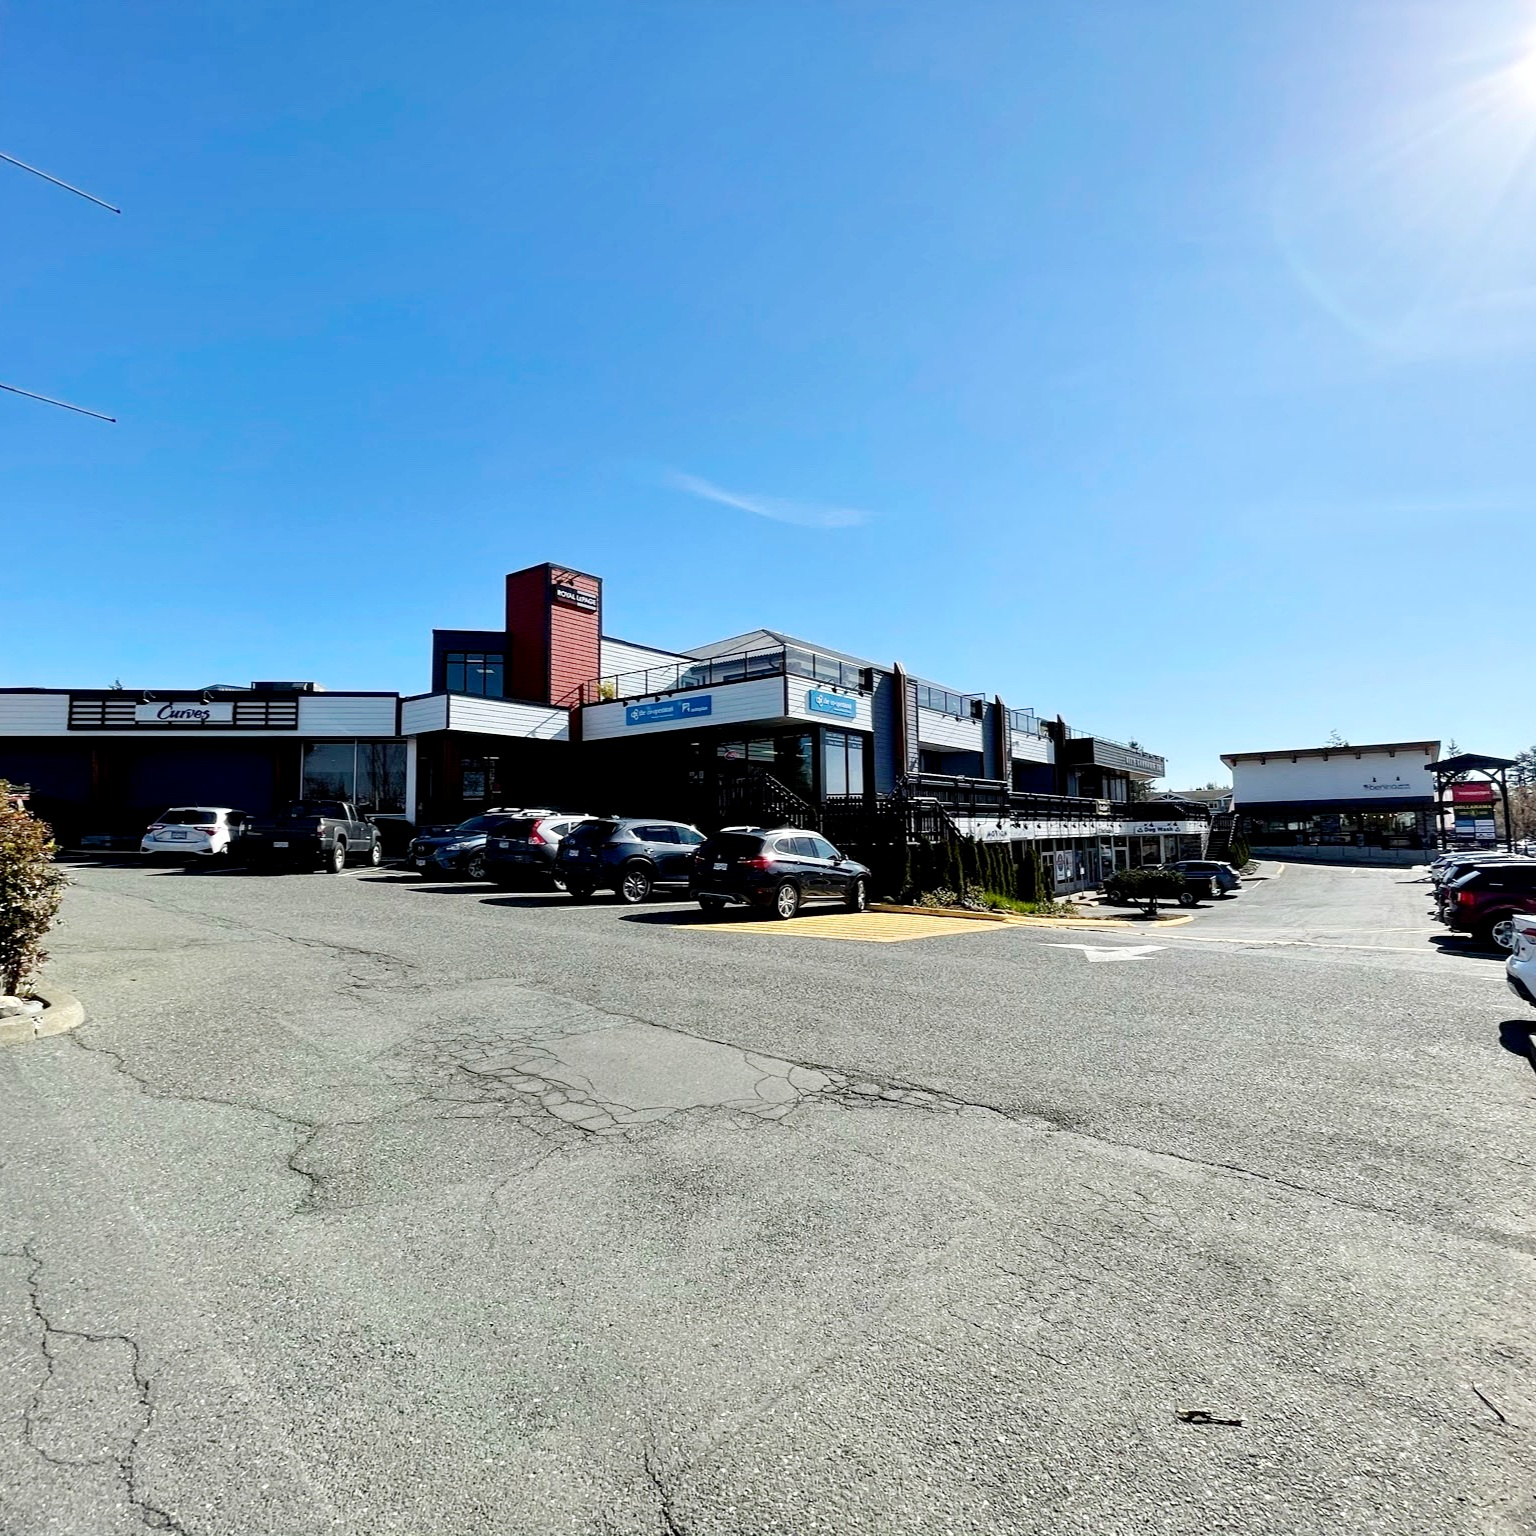 Comox storefront - view from parking lot entrance